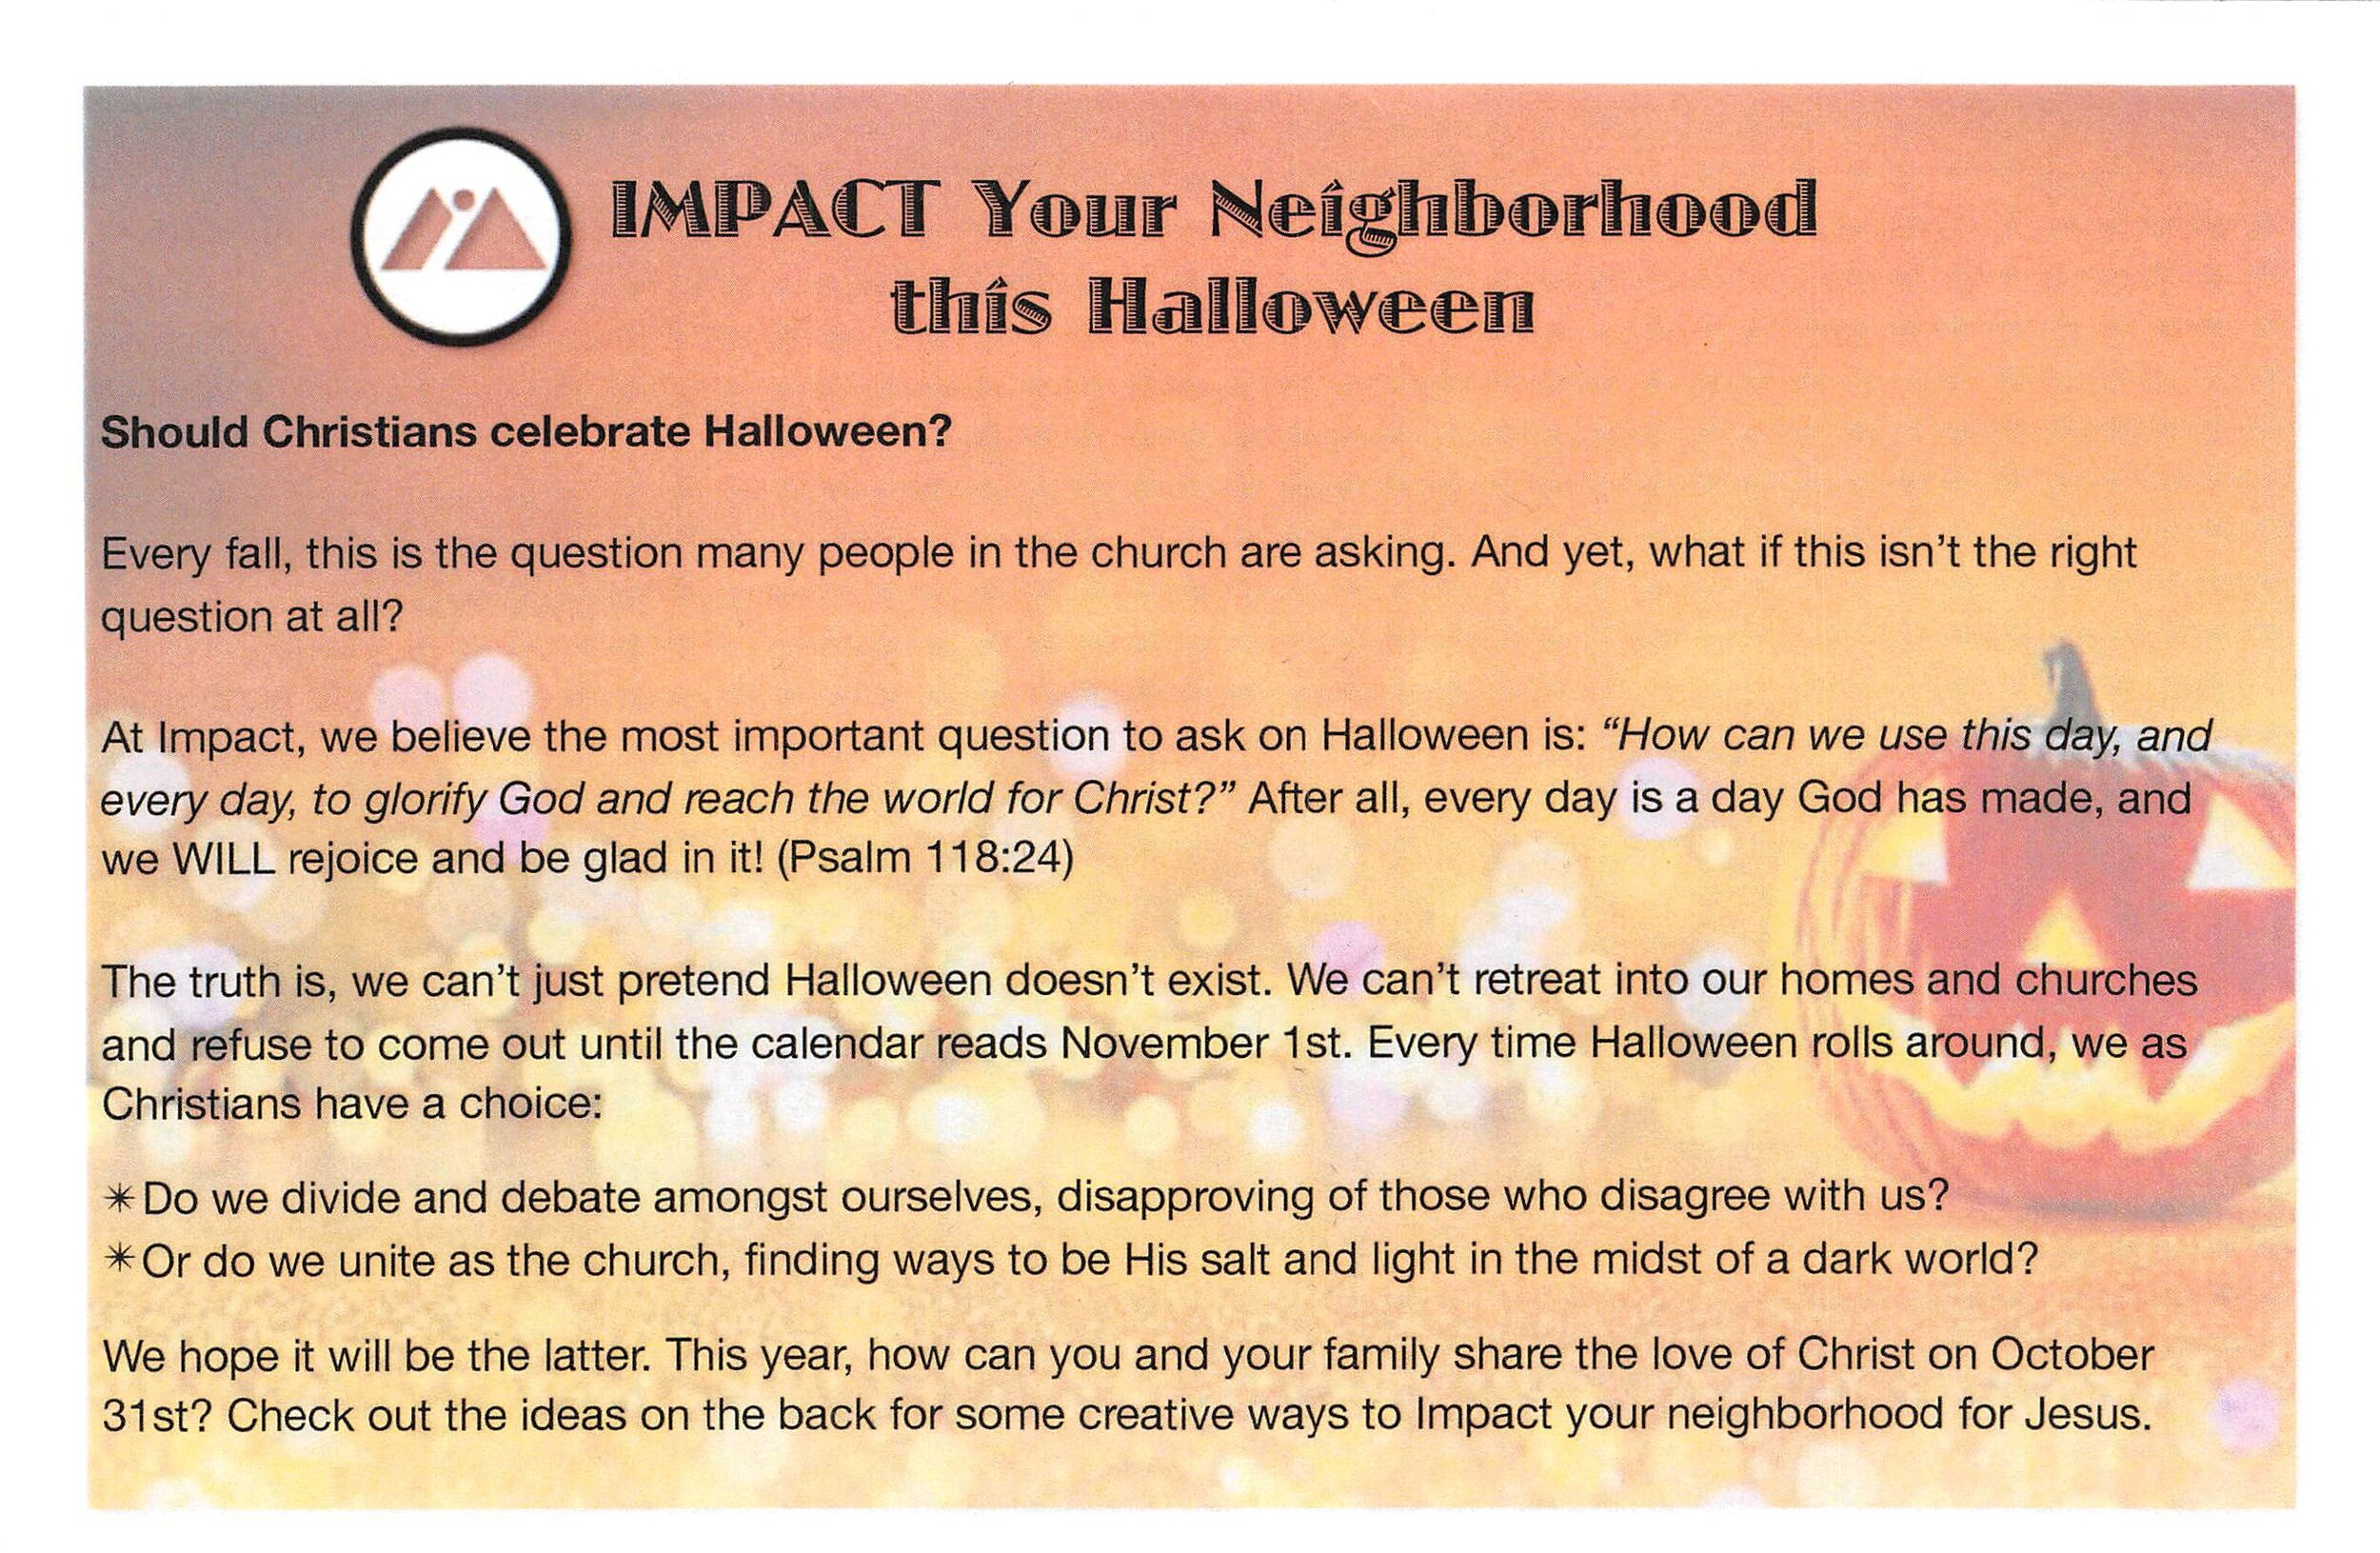 Impact Your Neighborhood_1.jpg